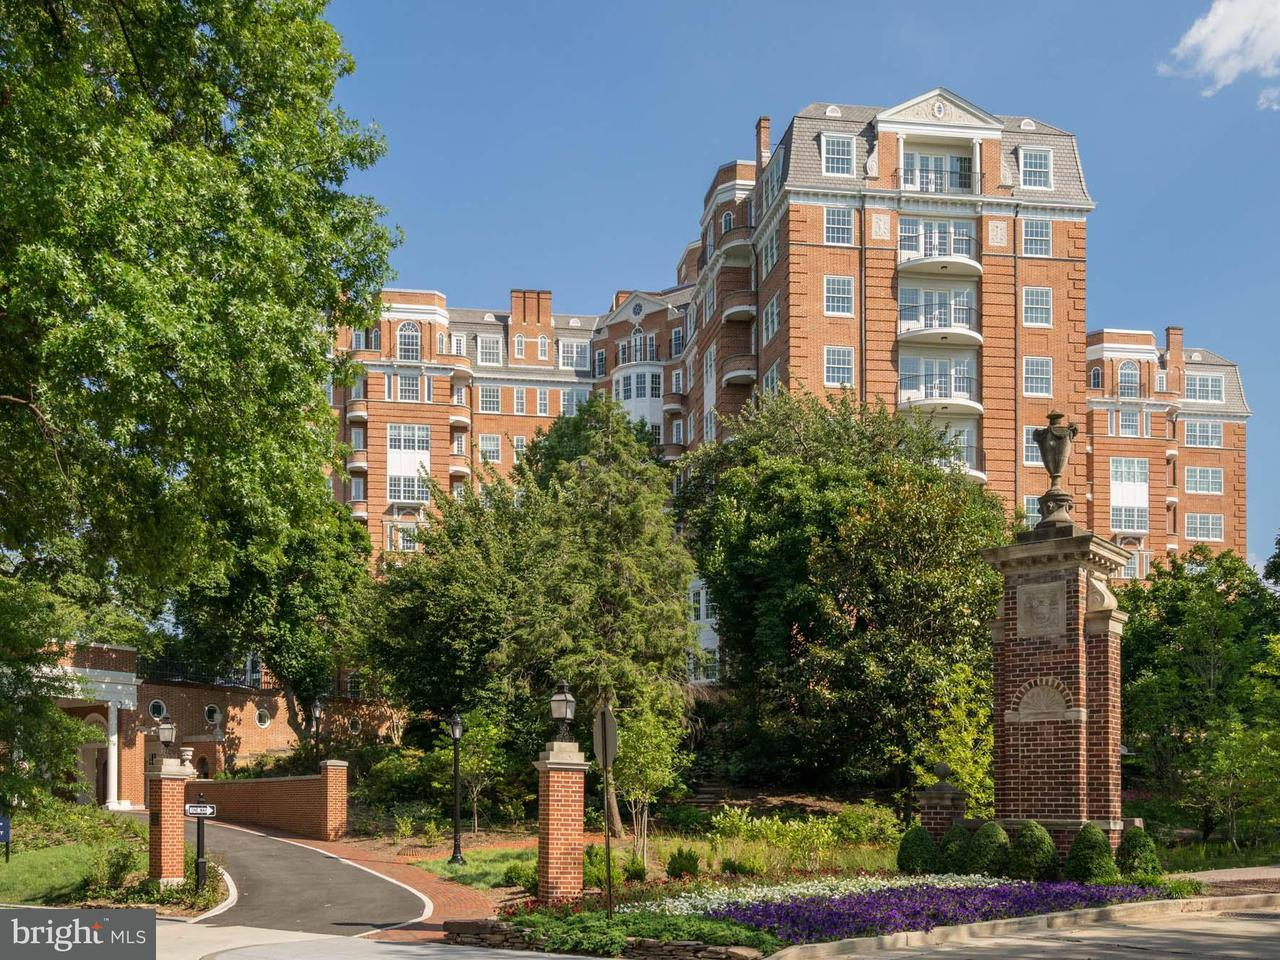 Single Family Home for Sale at 2660 CONNECTICUT AVE NW #6C 2660 CONNECTICUT AVE NW #6C Washington, District Of Columbia 20008 United States